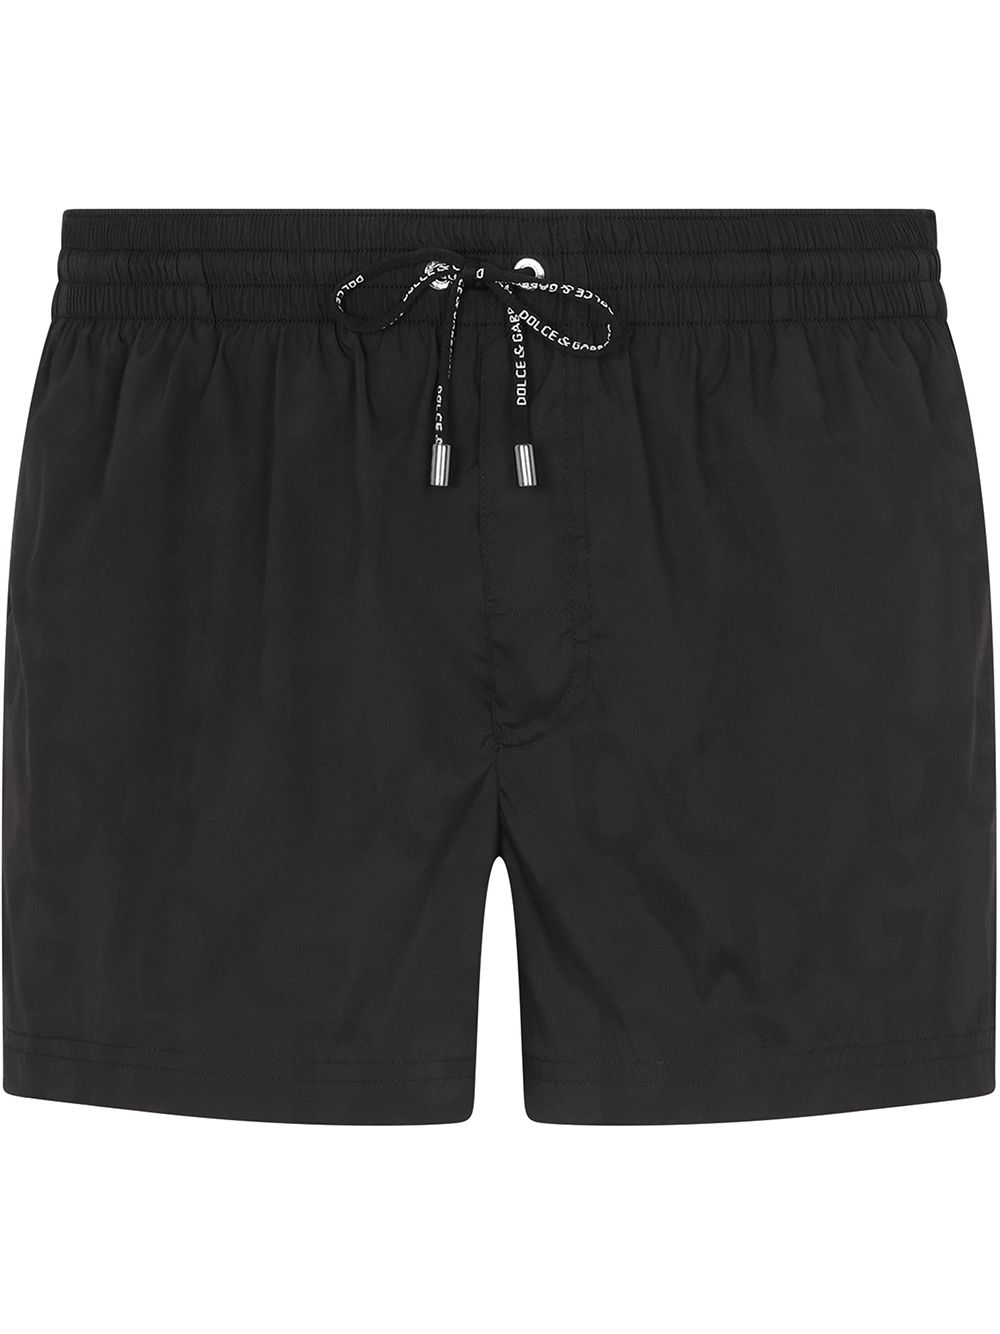 black swimming shorts with Dolce & Gabbana logo DOLCE & GABBANA |  | M4A06T-FPUABHN2UN